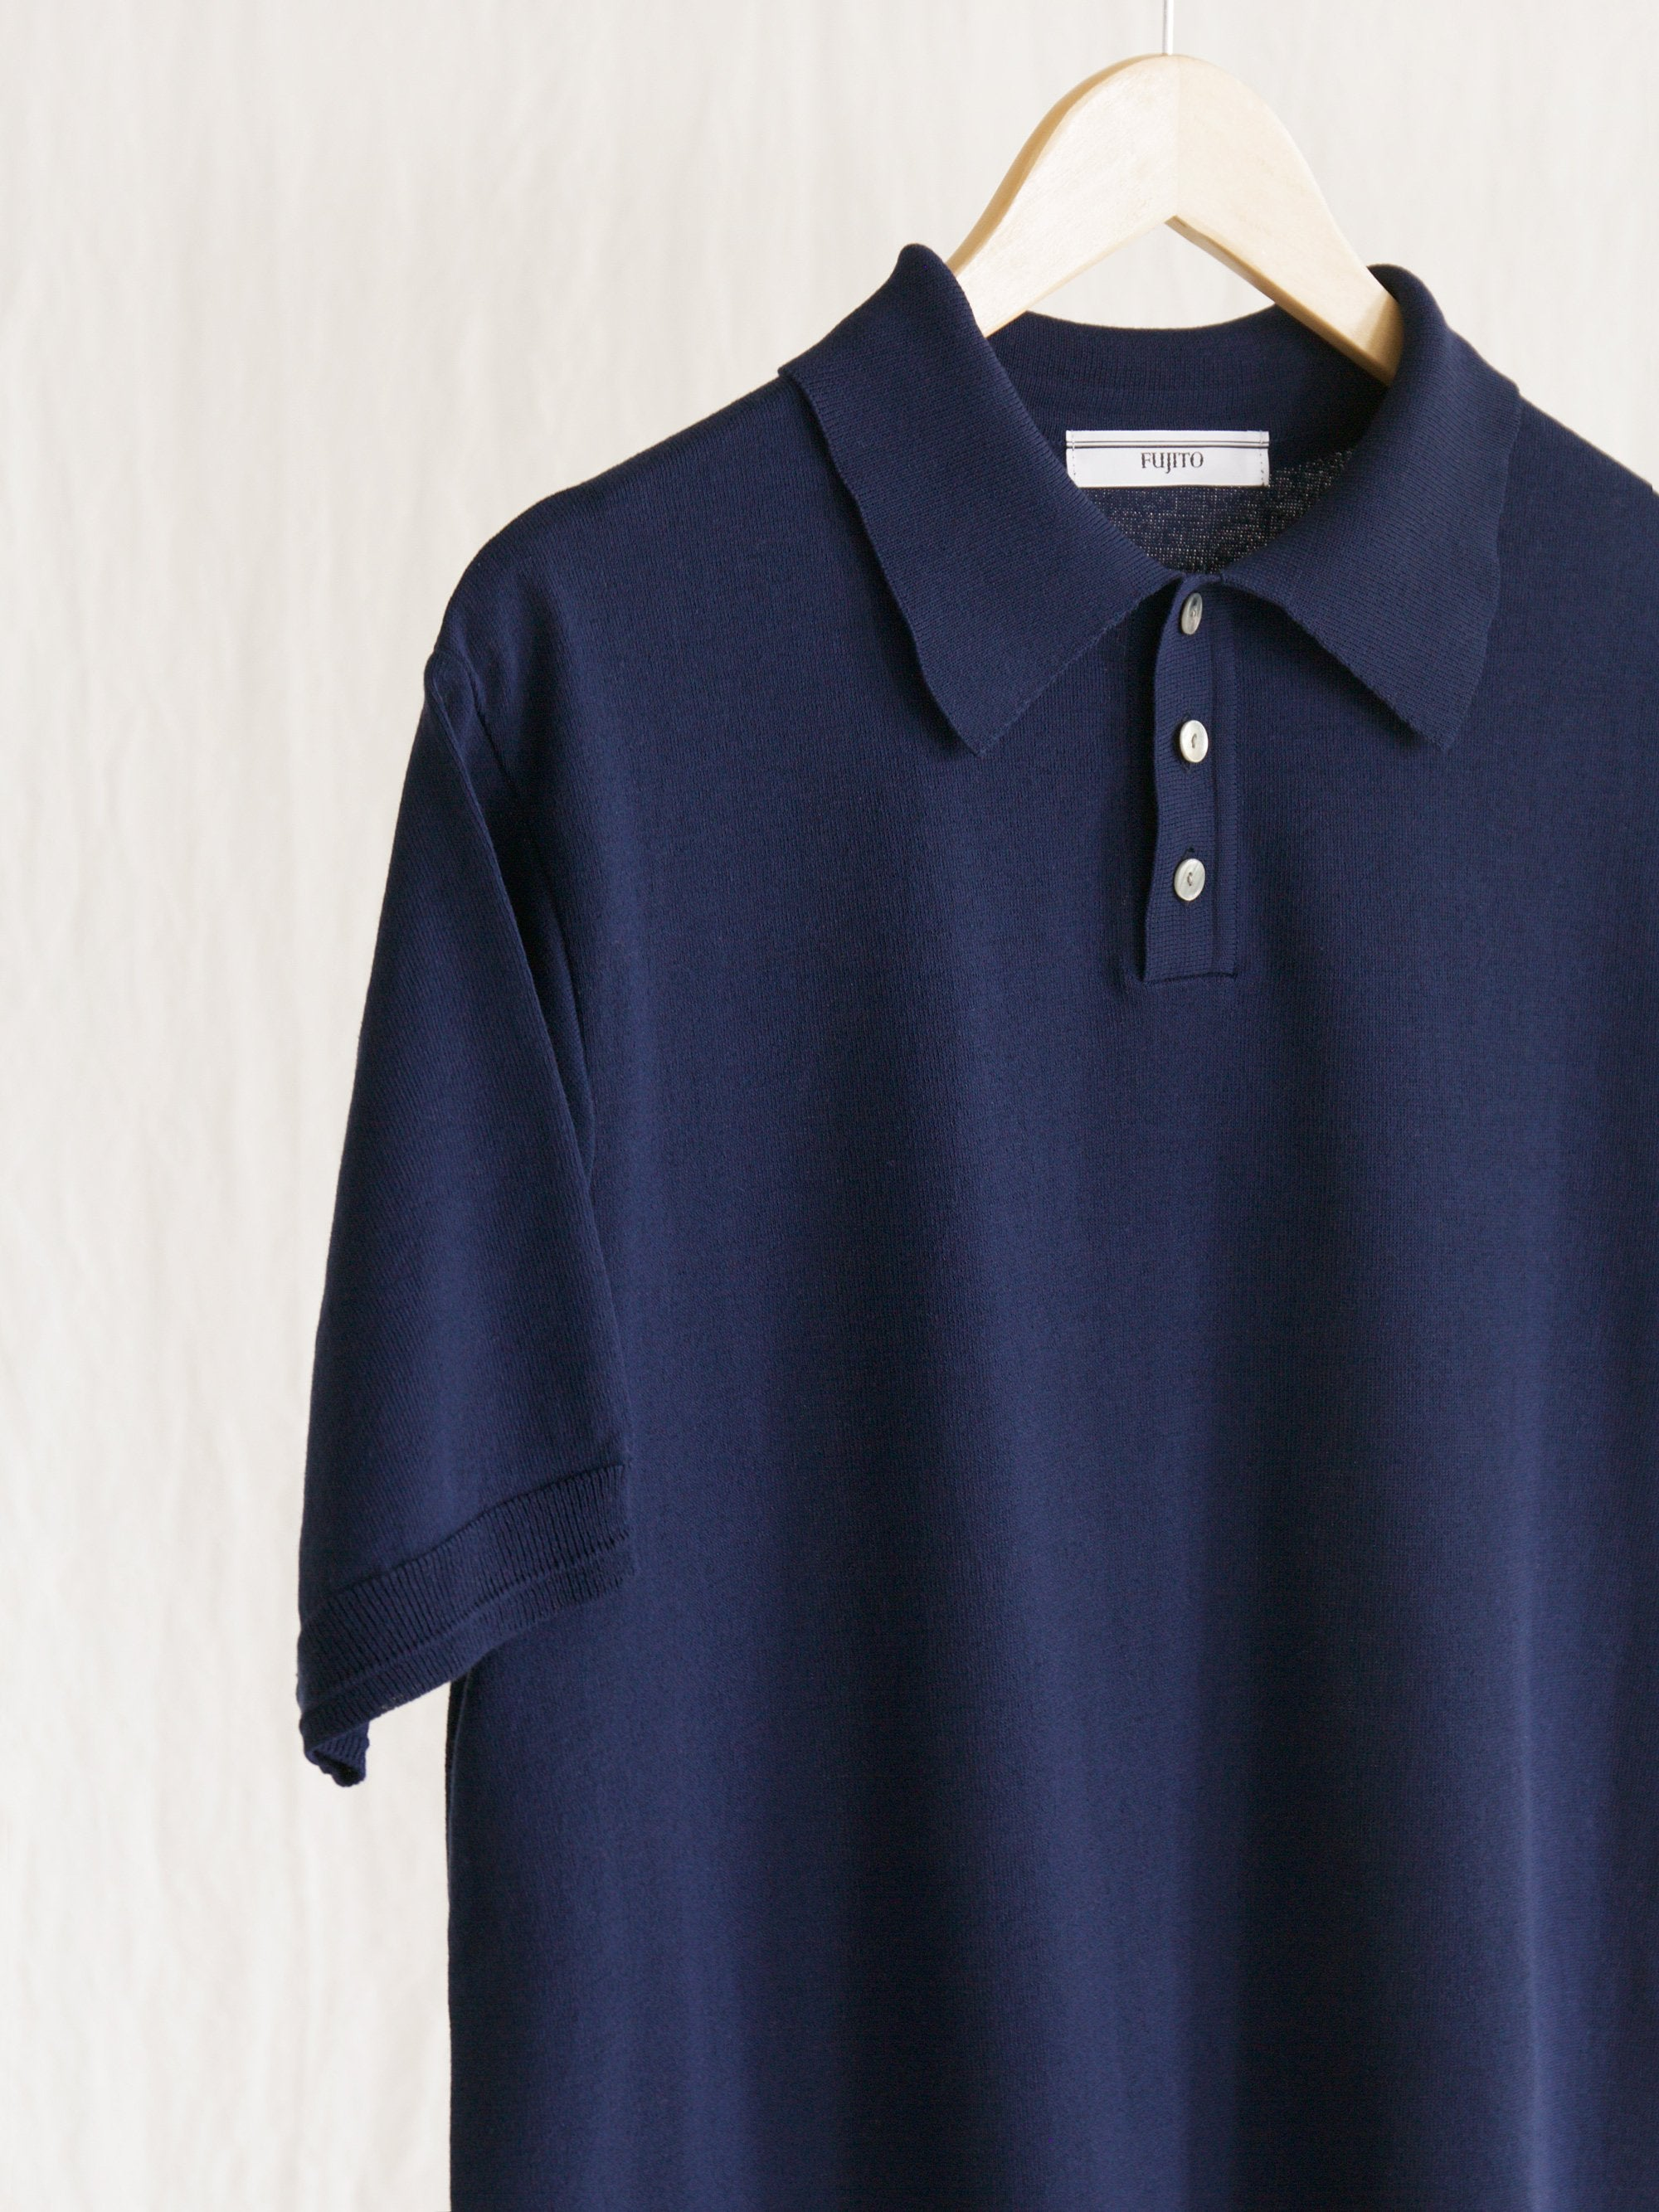 Namu Shop - Fujito Knit Polo Shirt